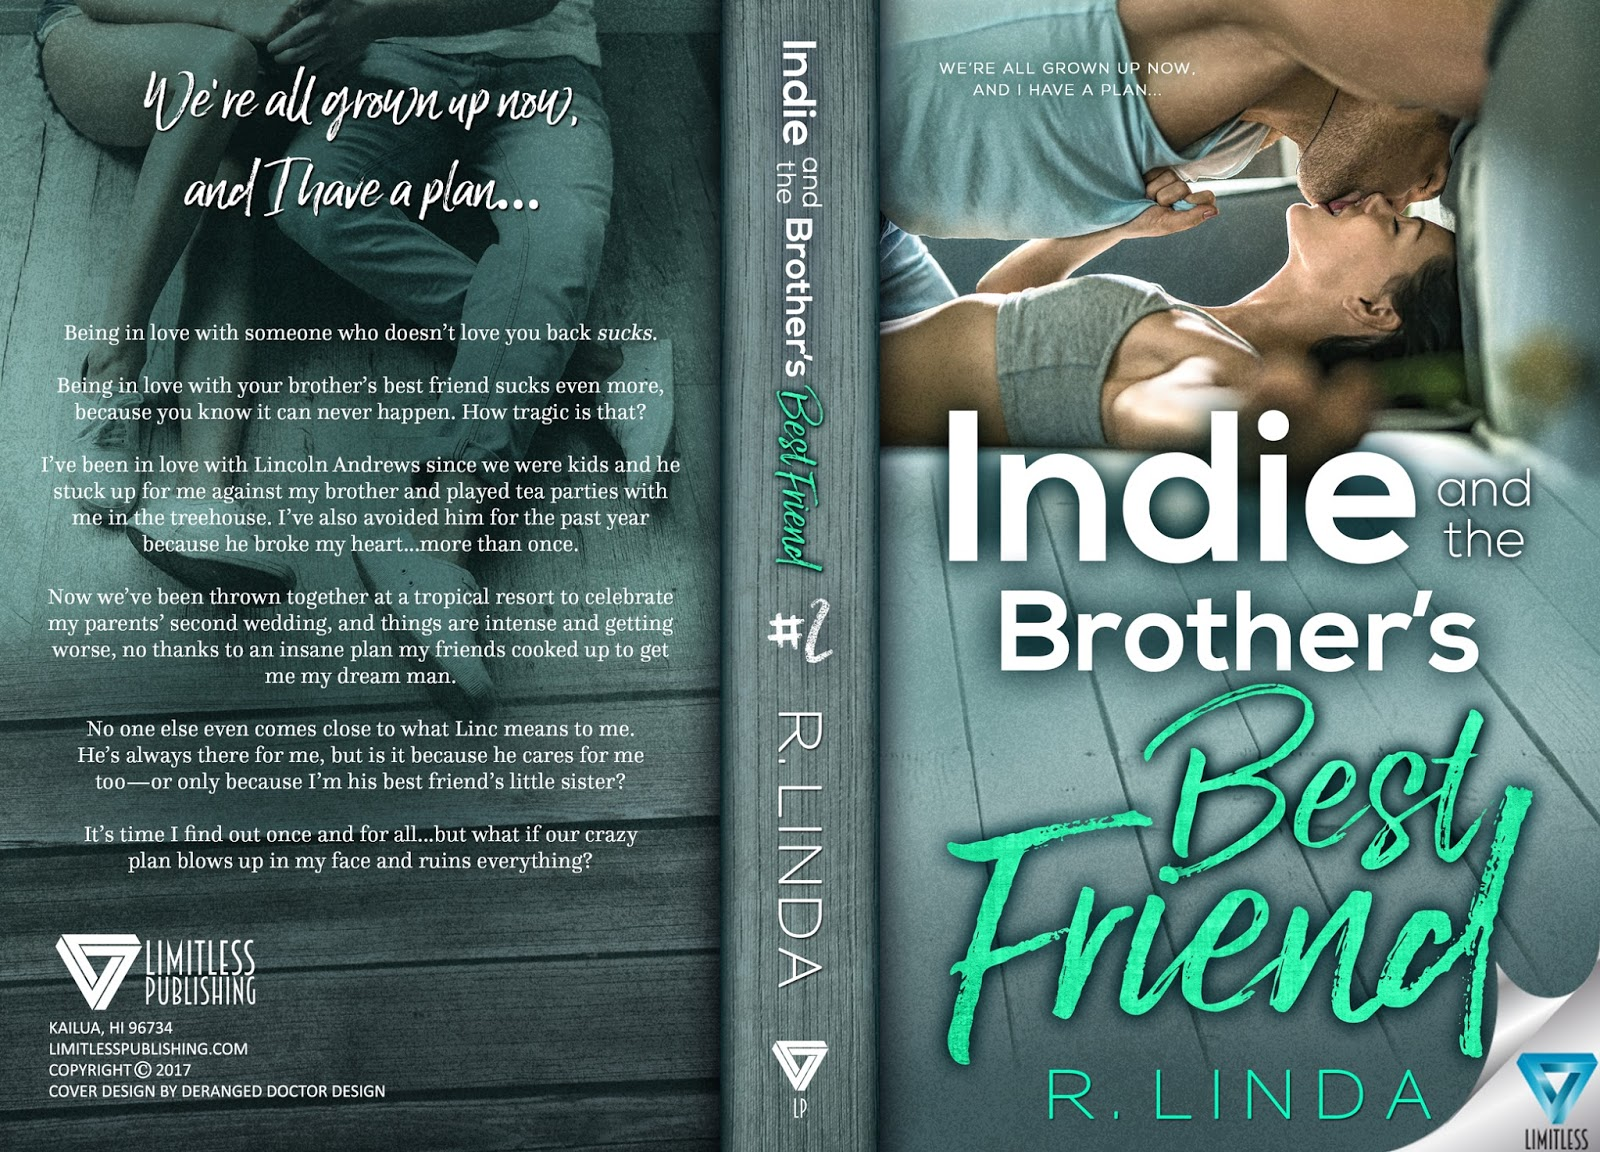 INDIE AND THE BROTHER'S BEST FRIEND by R  Linda: Cover Reveal